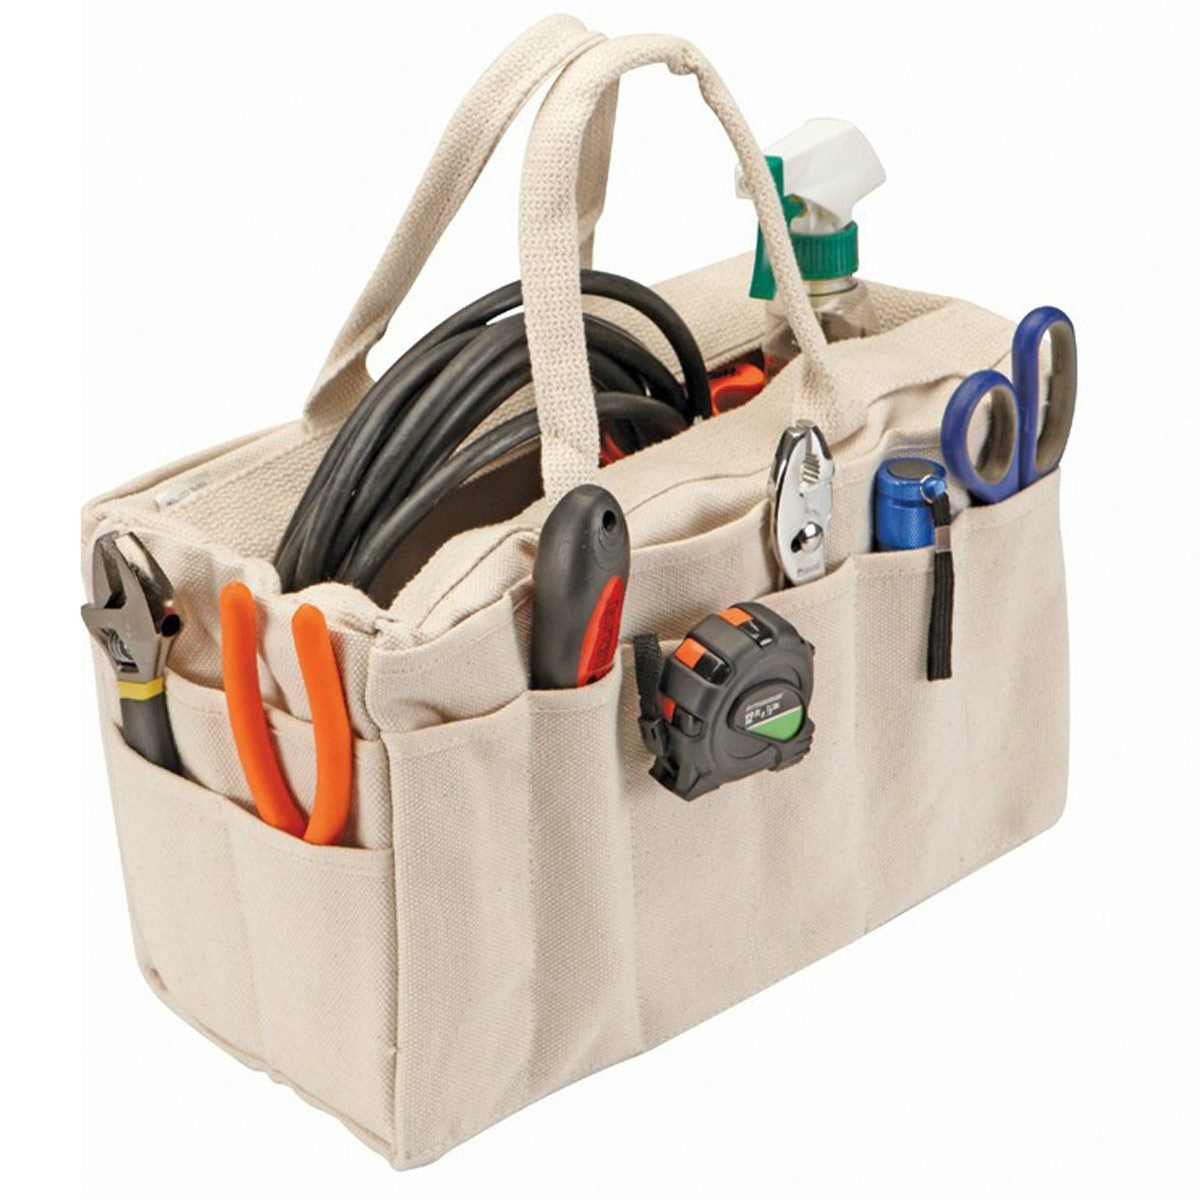 Canvas riggers tool bag